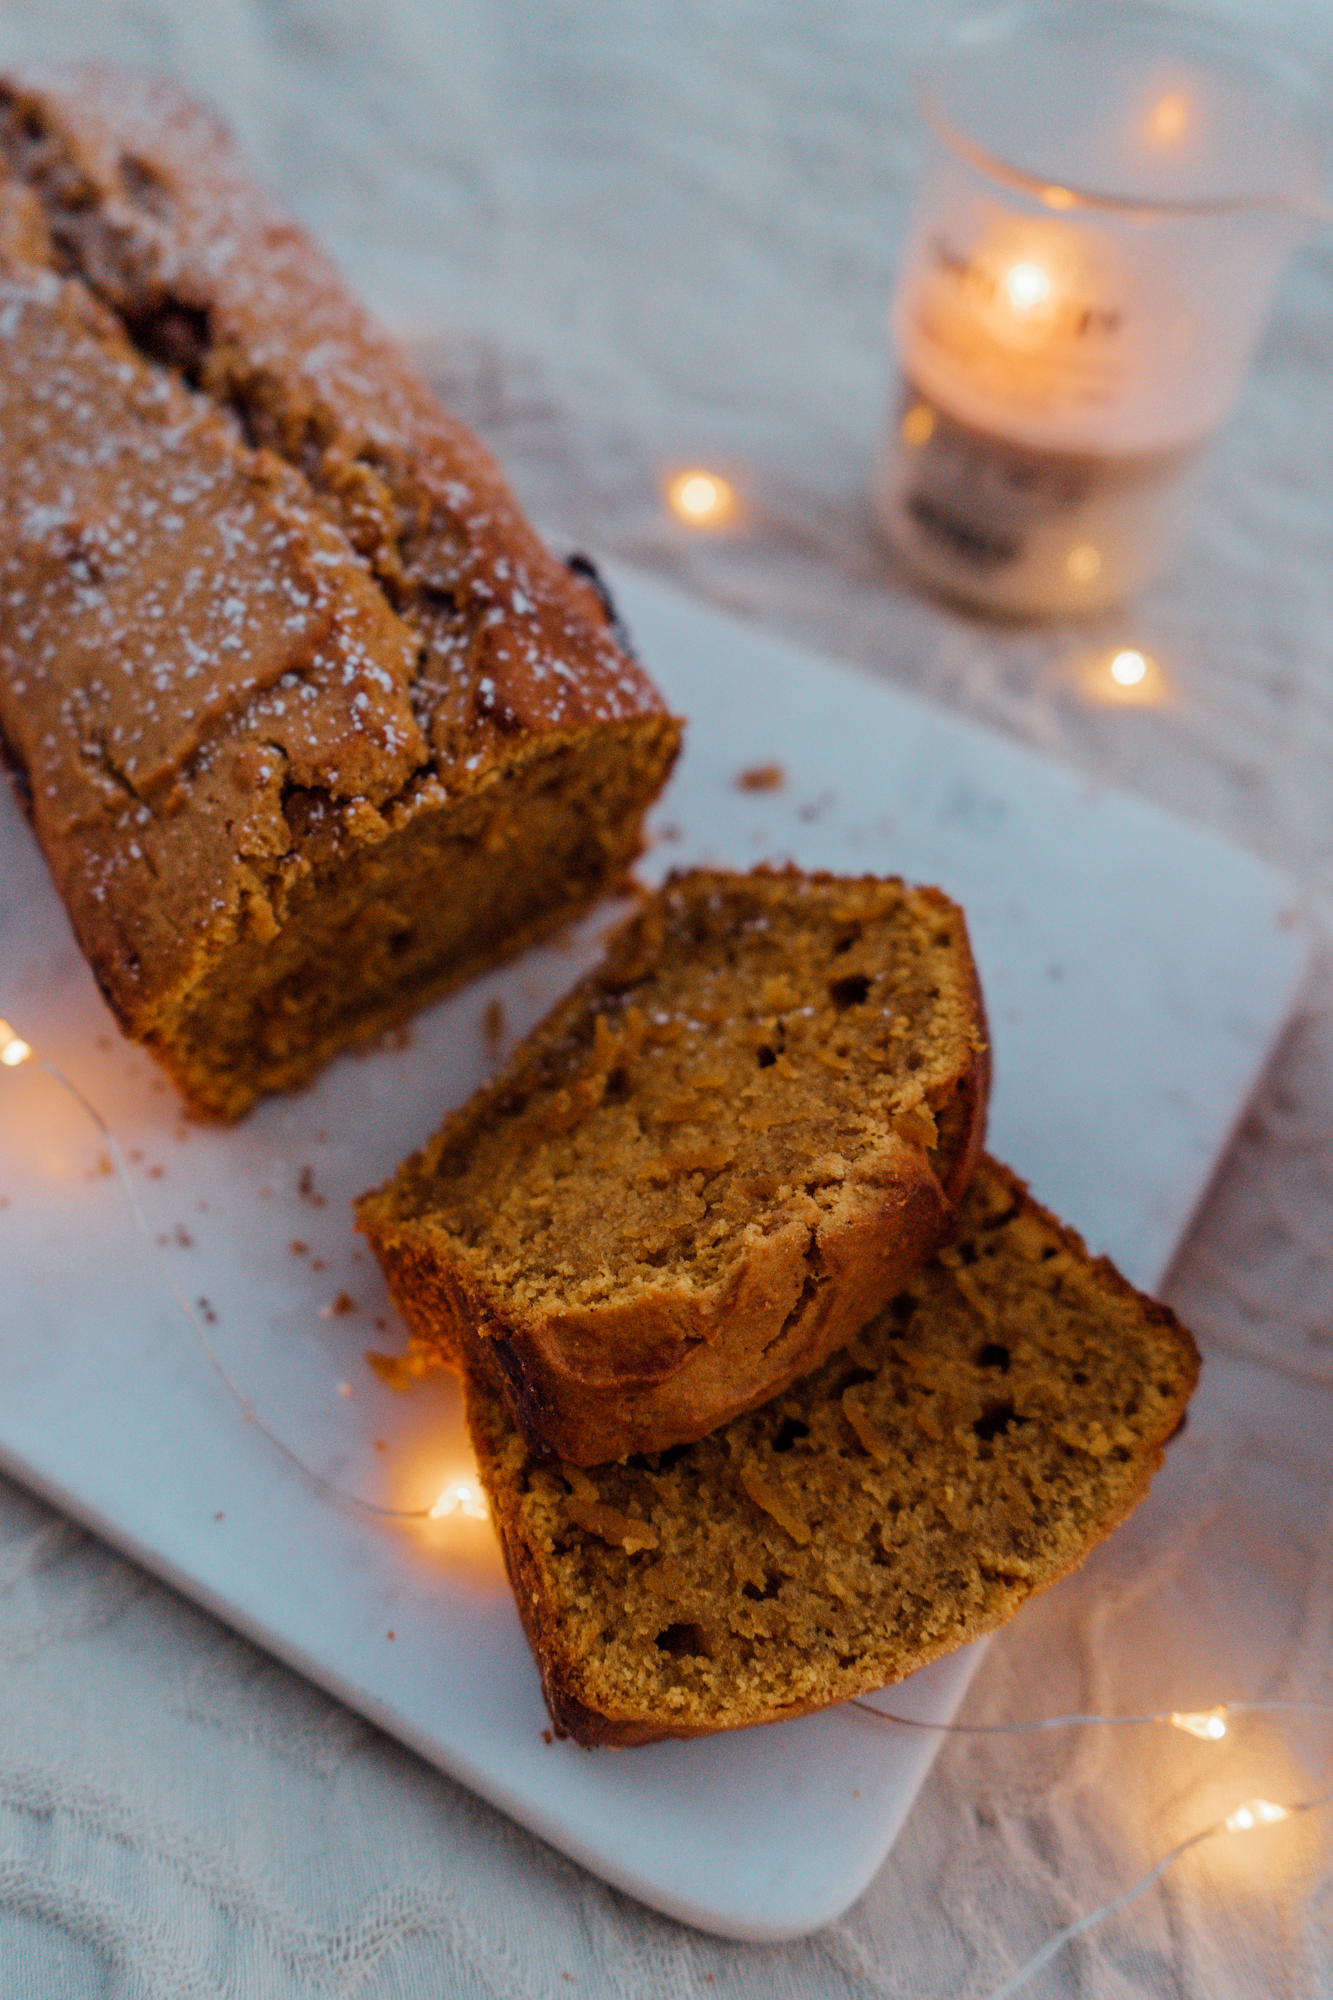 Autumn Baking: Pumpkin Gingerbread Recipe